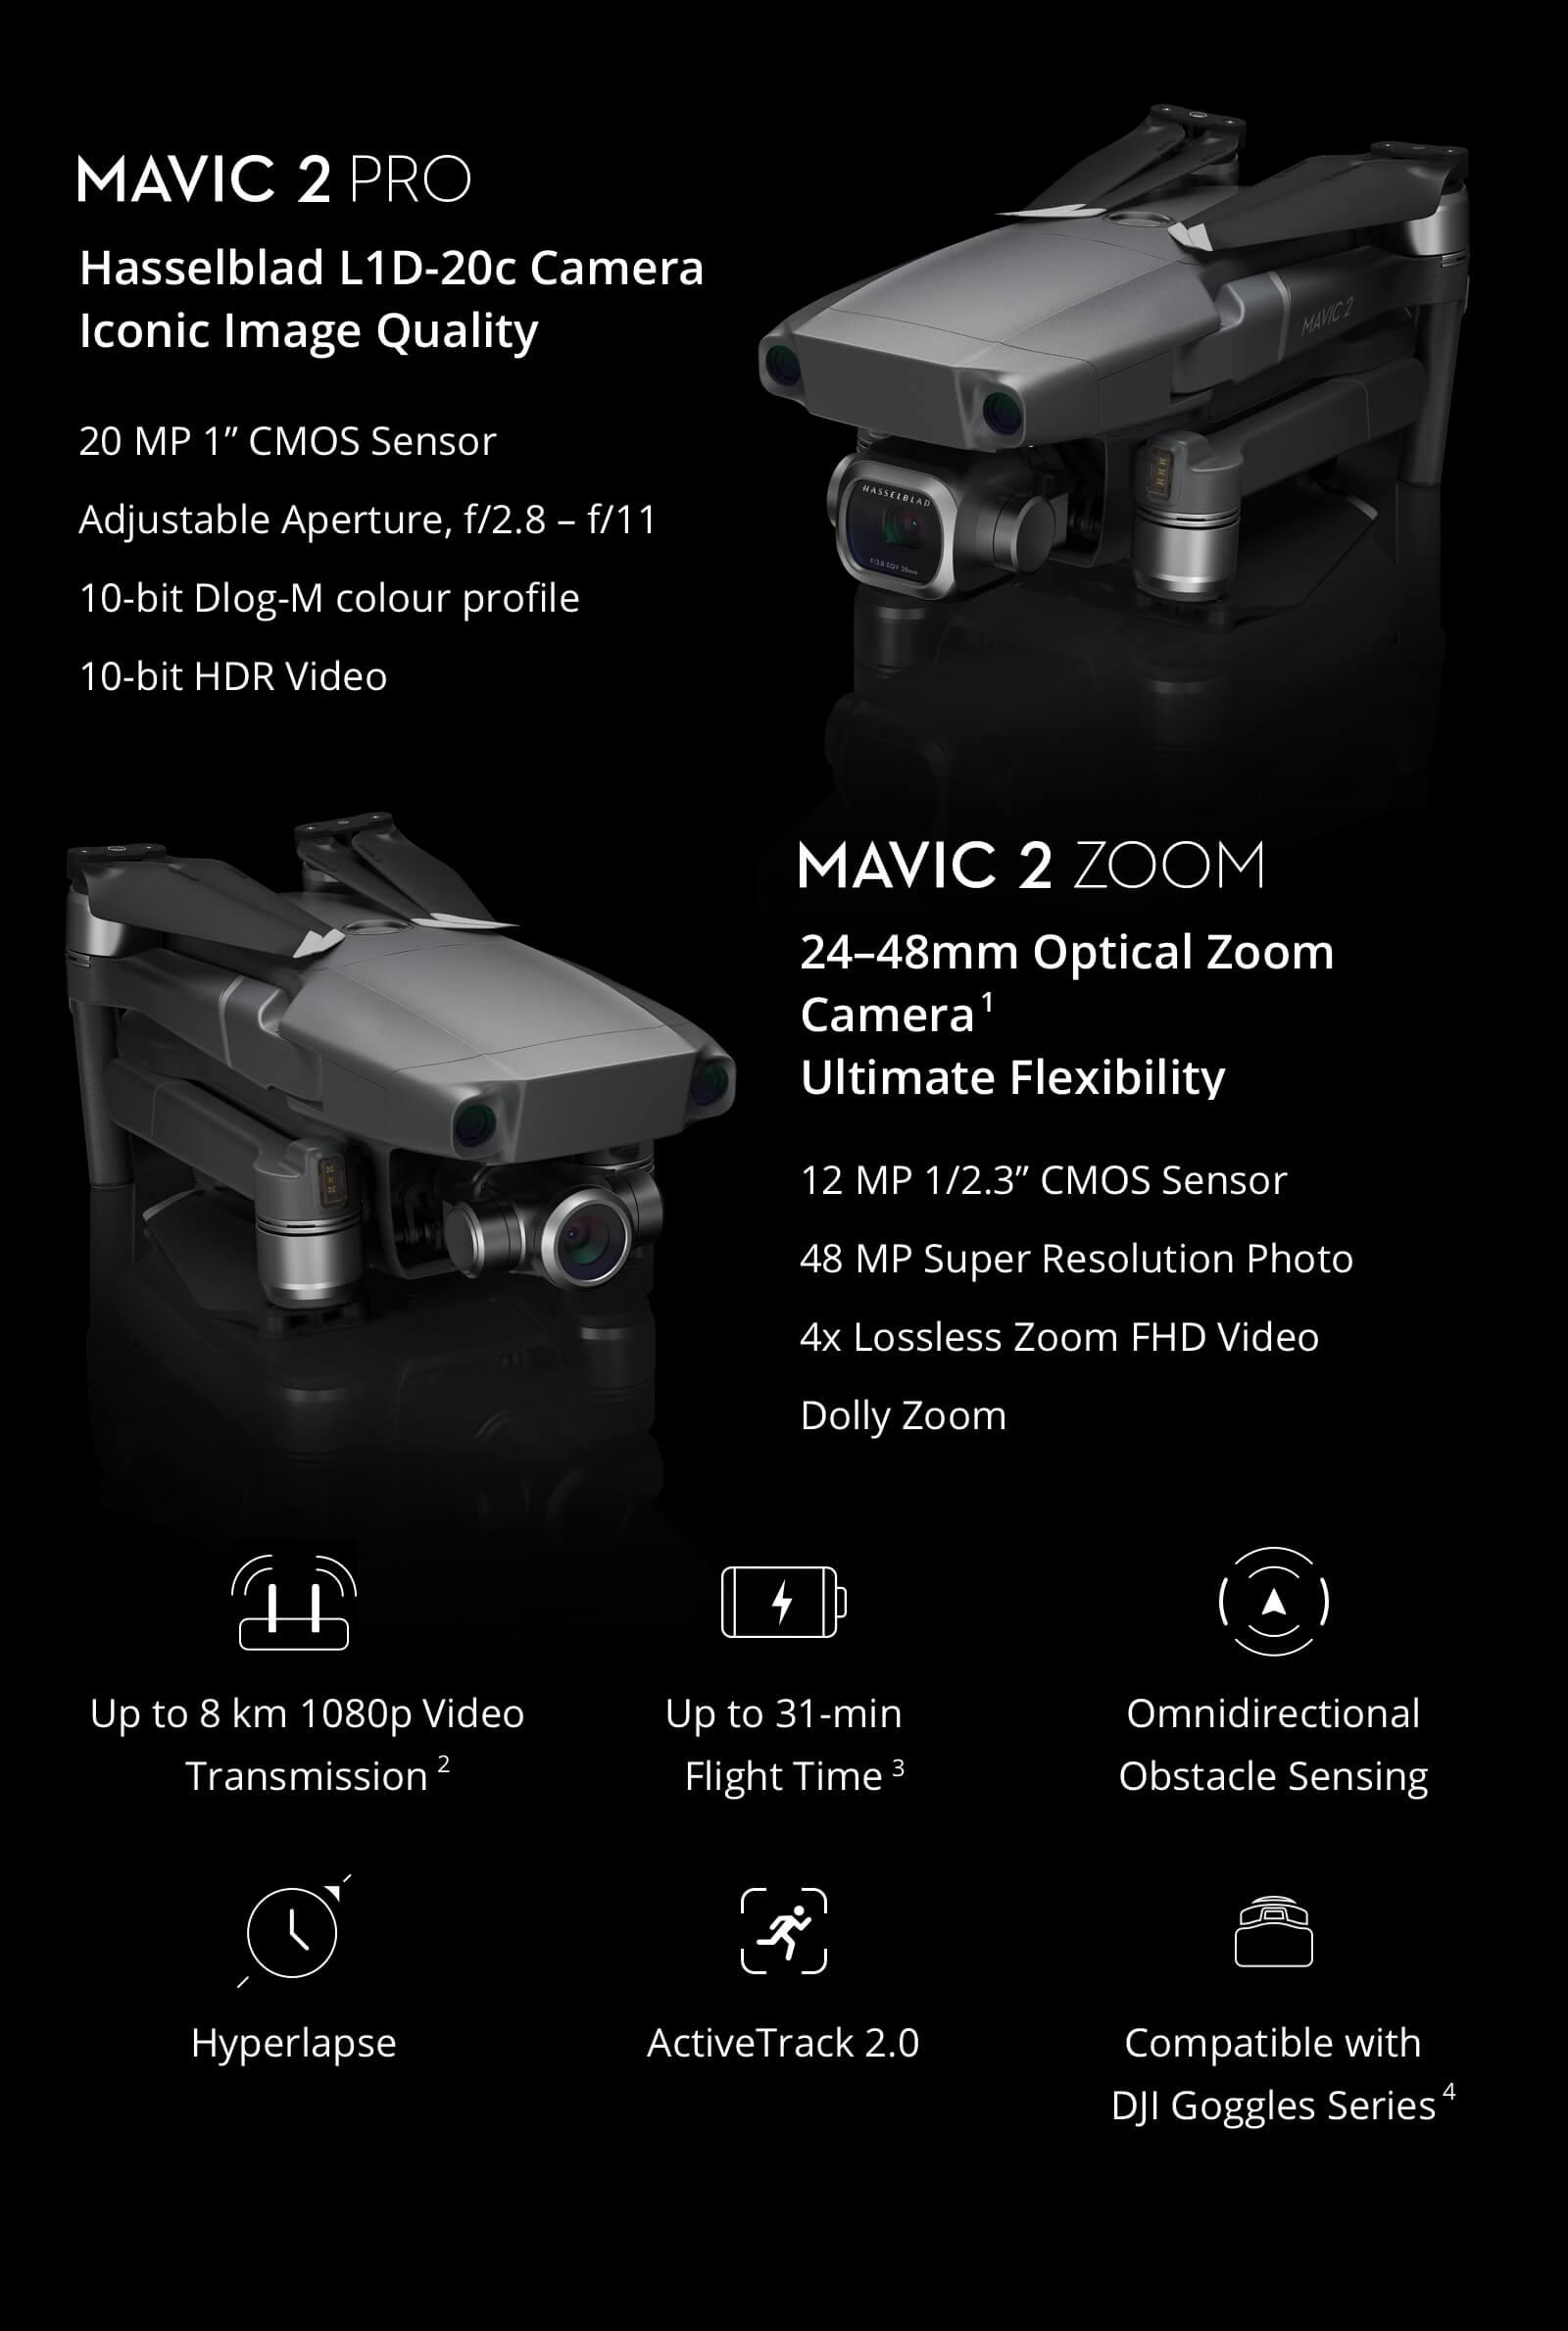 Comparison between Mavic 2 pro and Mavic 2 zoom